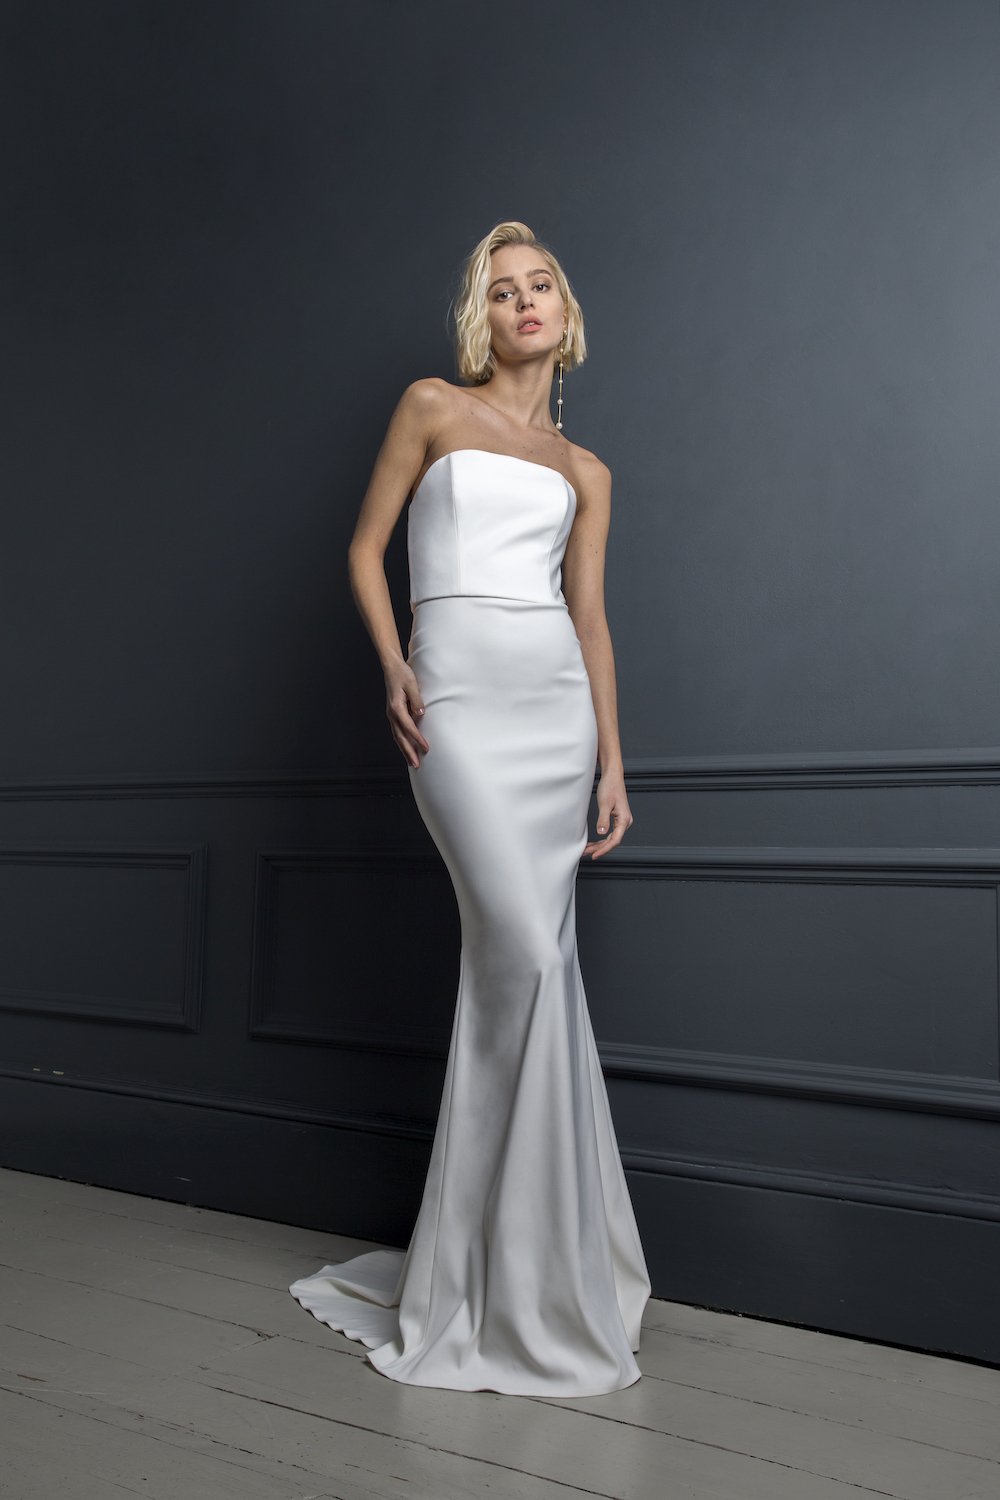 OLIVER DRESS | WEDDING DRESS BY HALFPENNY LONDON